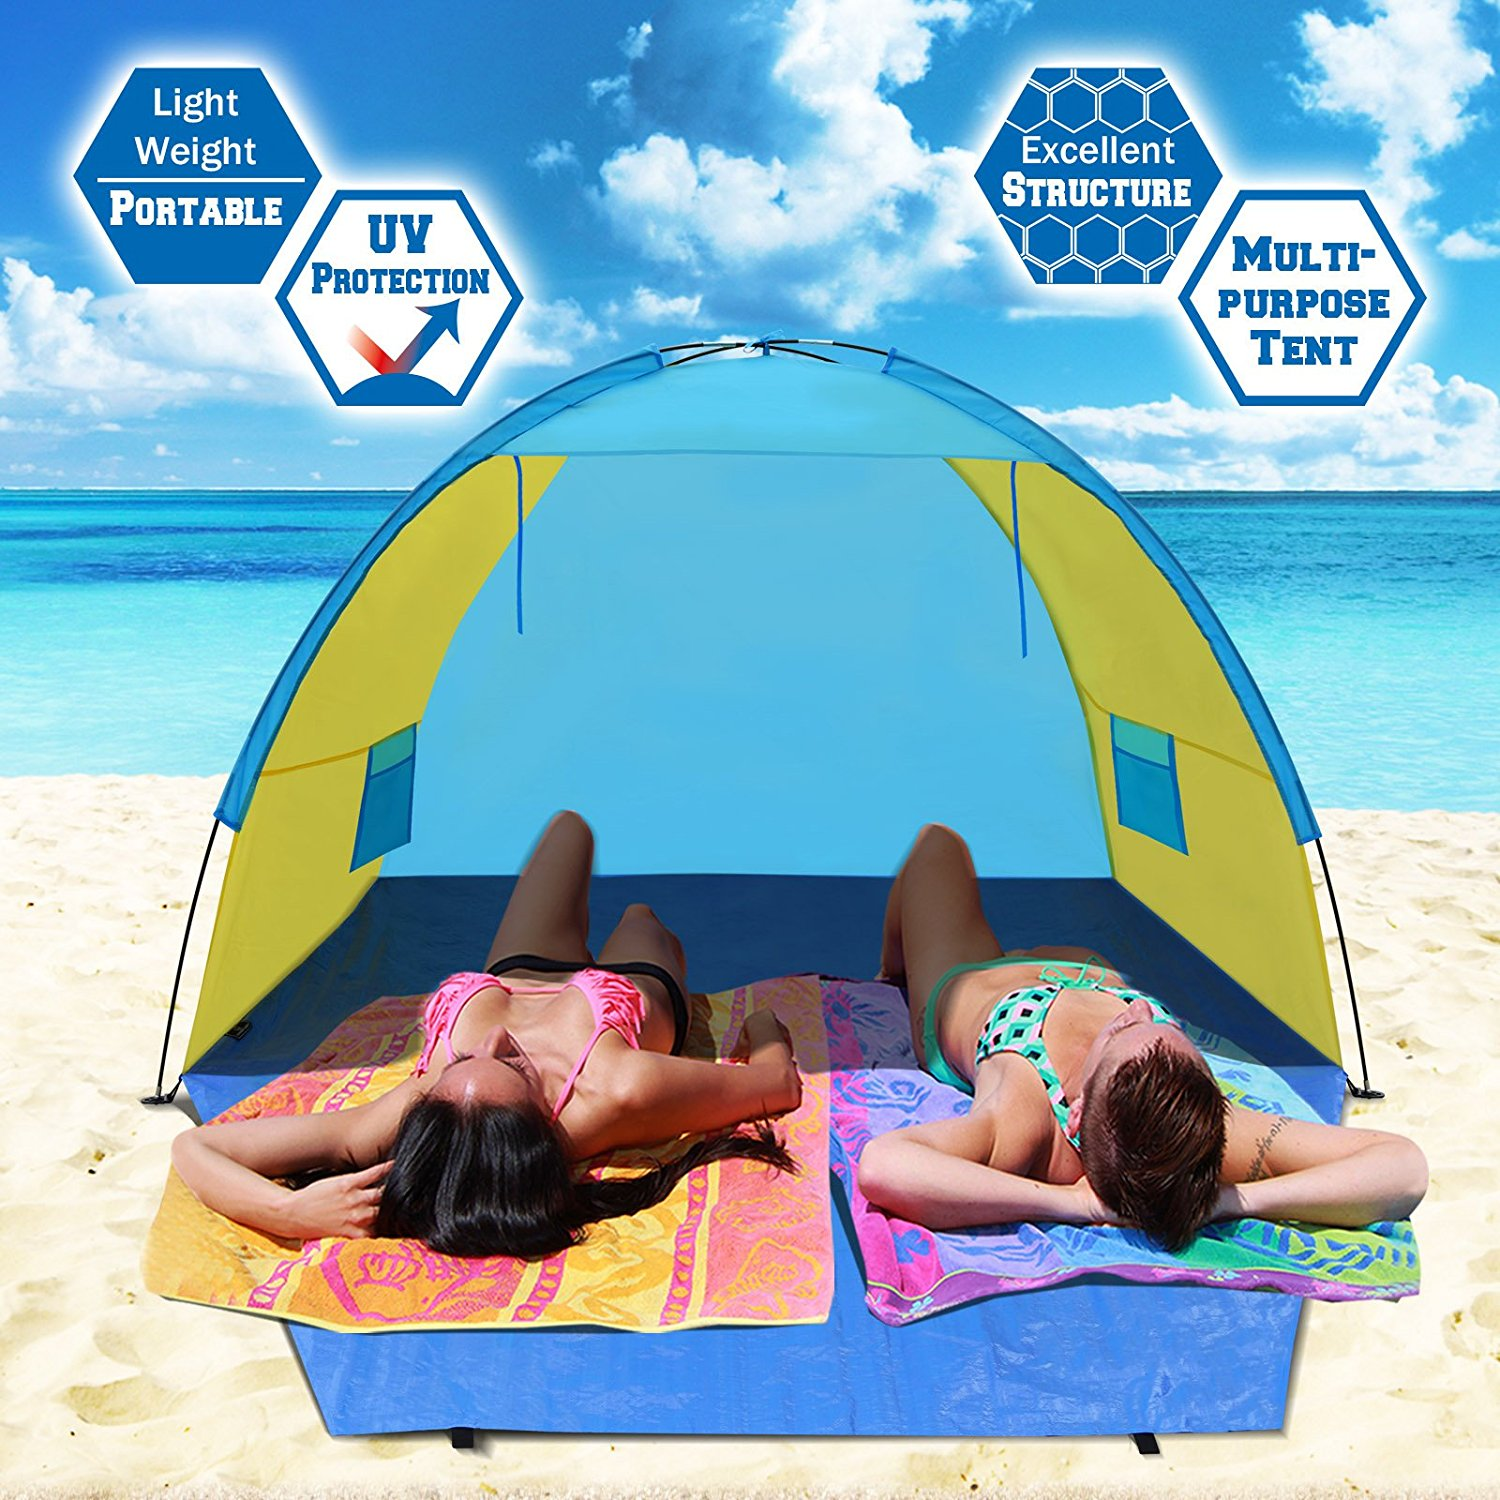 Sunrise Portable Pop Up Beach Shelter, Camping Tent, Sunshade Outdoor Canopy, Light Blue and Yellow, W Carry Bag by Sunrise Umbrella Inc